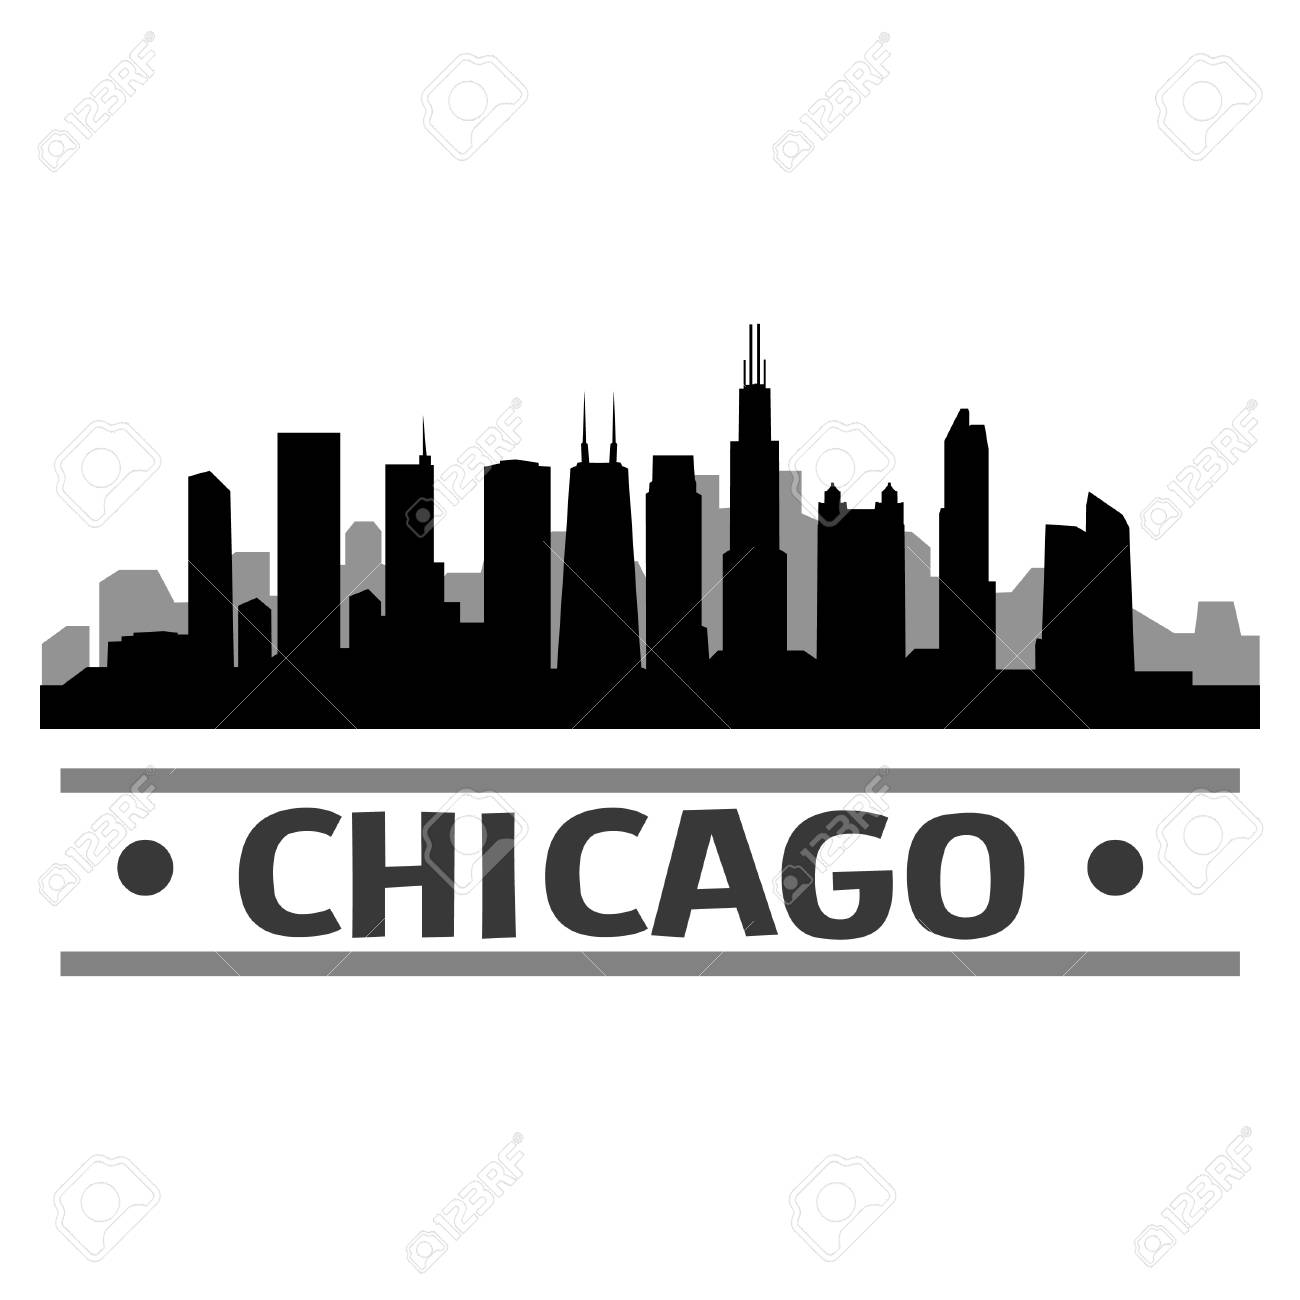 chicago skyline vector art city design royalty free cliparts rh 123rf com Chicago Skyline Wallpaper chicago skyline vector art